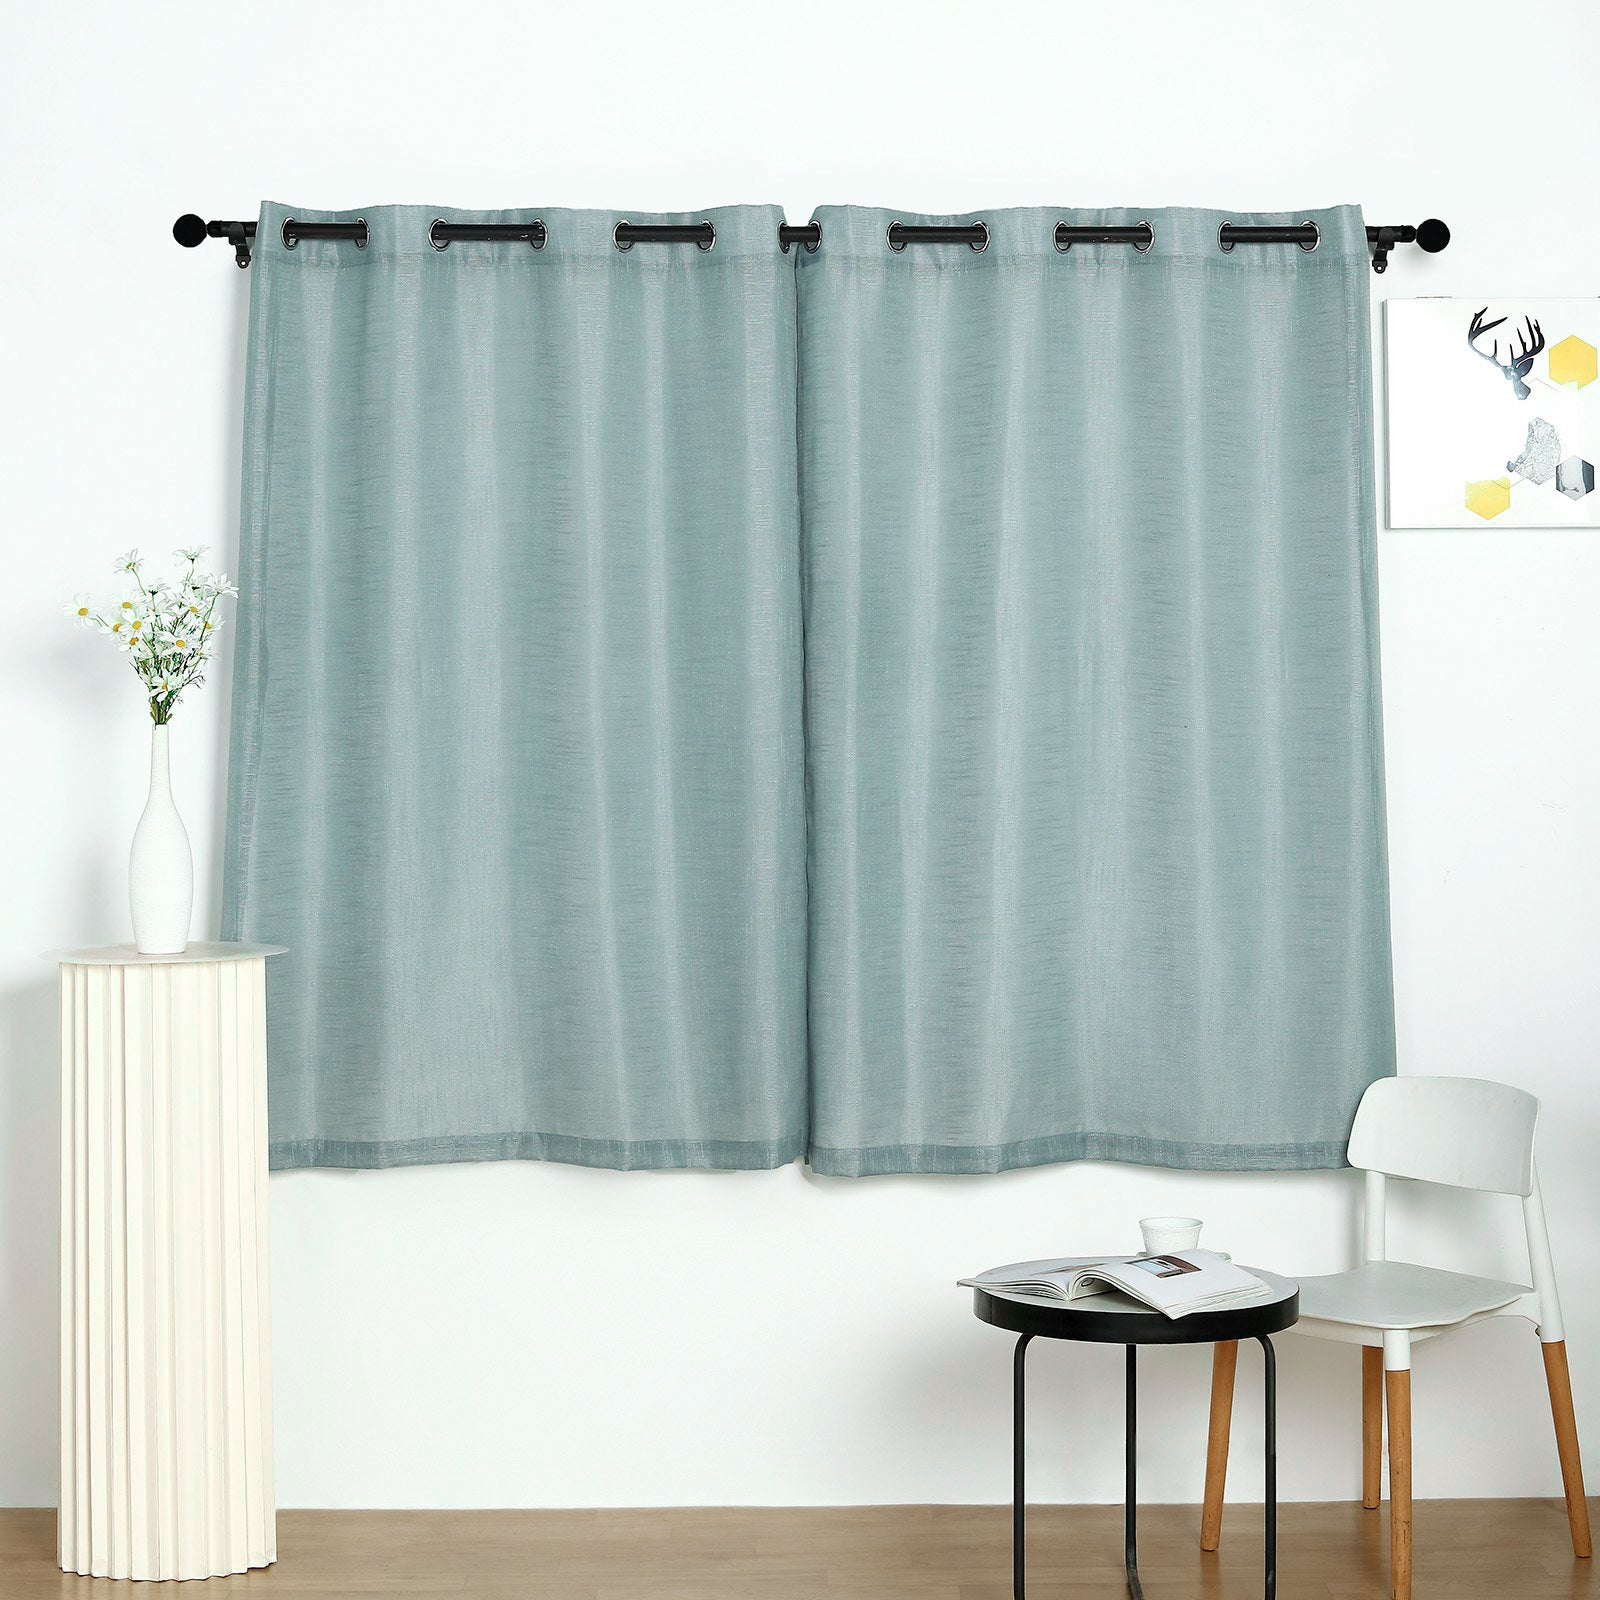 Pack Of 2 52 X64 Dusty Blue Faux Linen Curtains Semi Sheer Curtain Panels With Chrome Grommet Tableclothsfactory